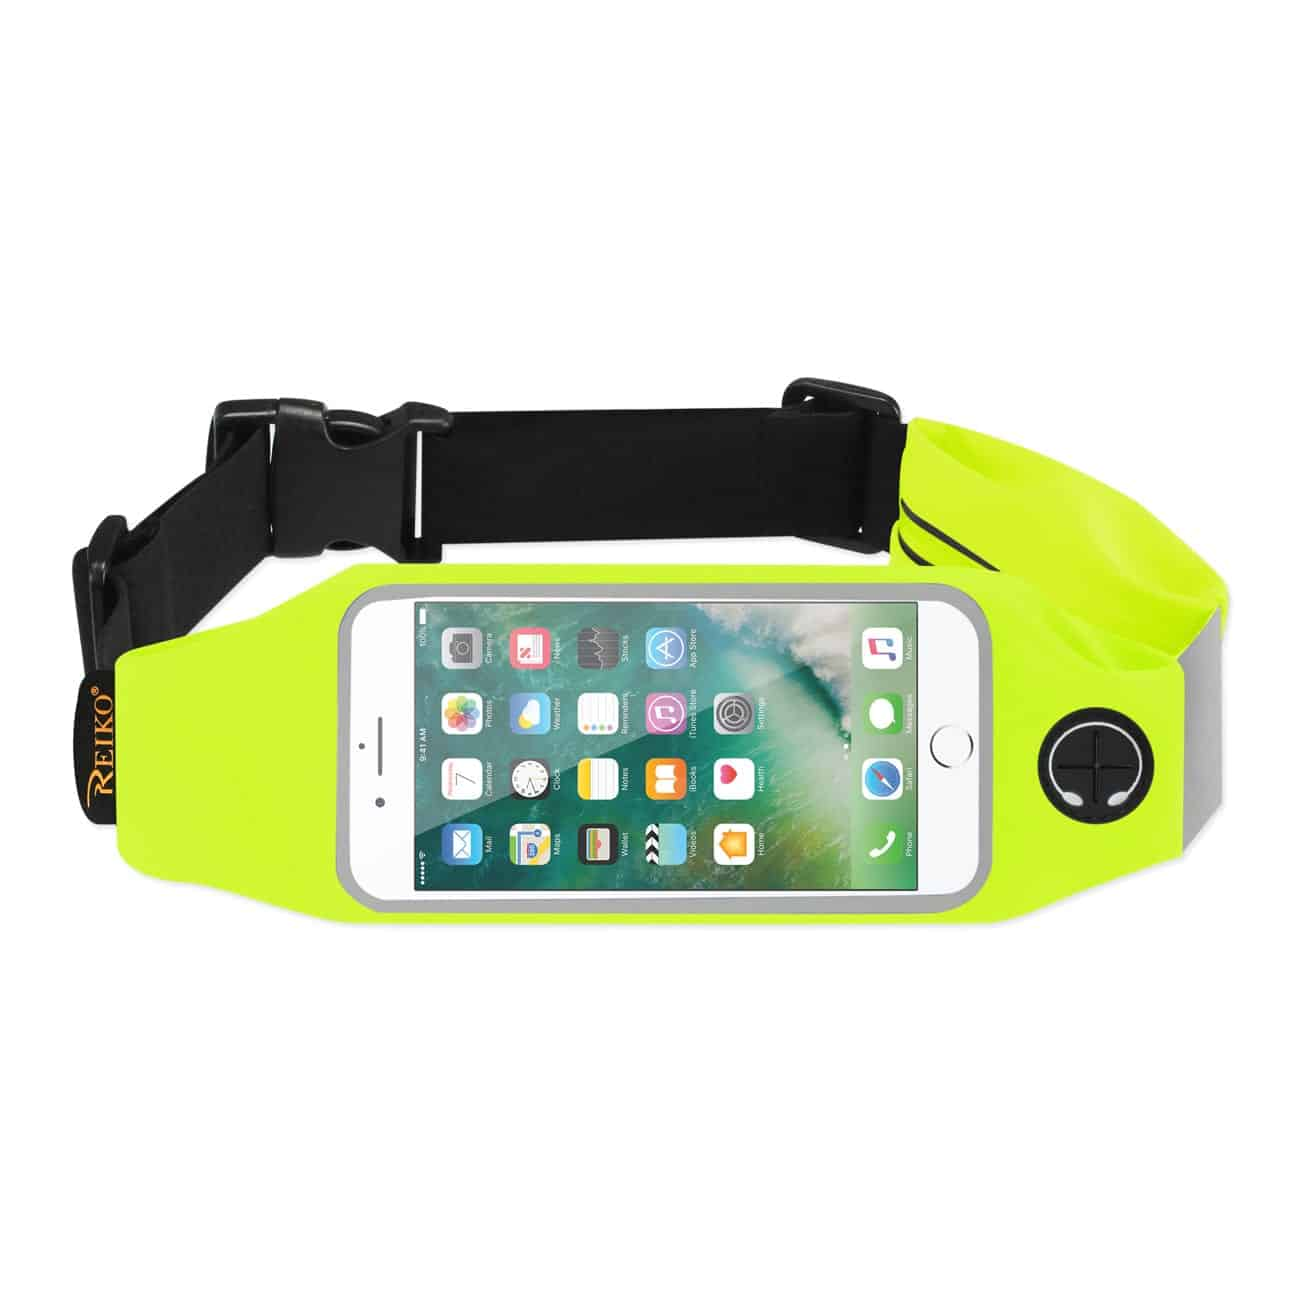 RUNNING SPORT BELT FOR IPHONE 7 PLUS/ 6S PLUS OR 5.5 INCHES DEVICE WITH TWO POCKETS IN GREEN (5.5x5.5 INCHES)